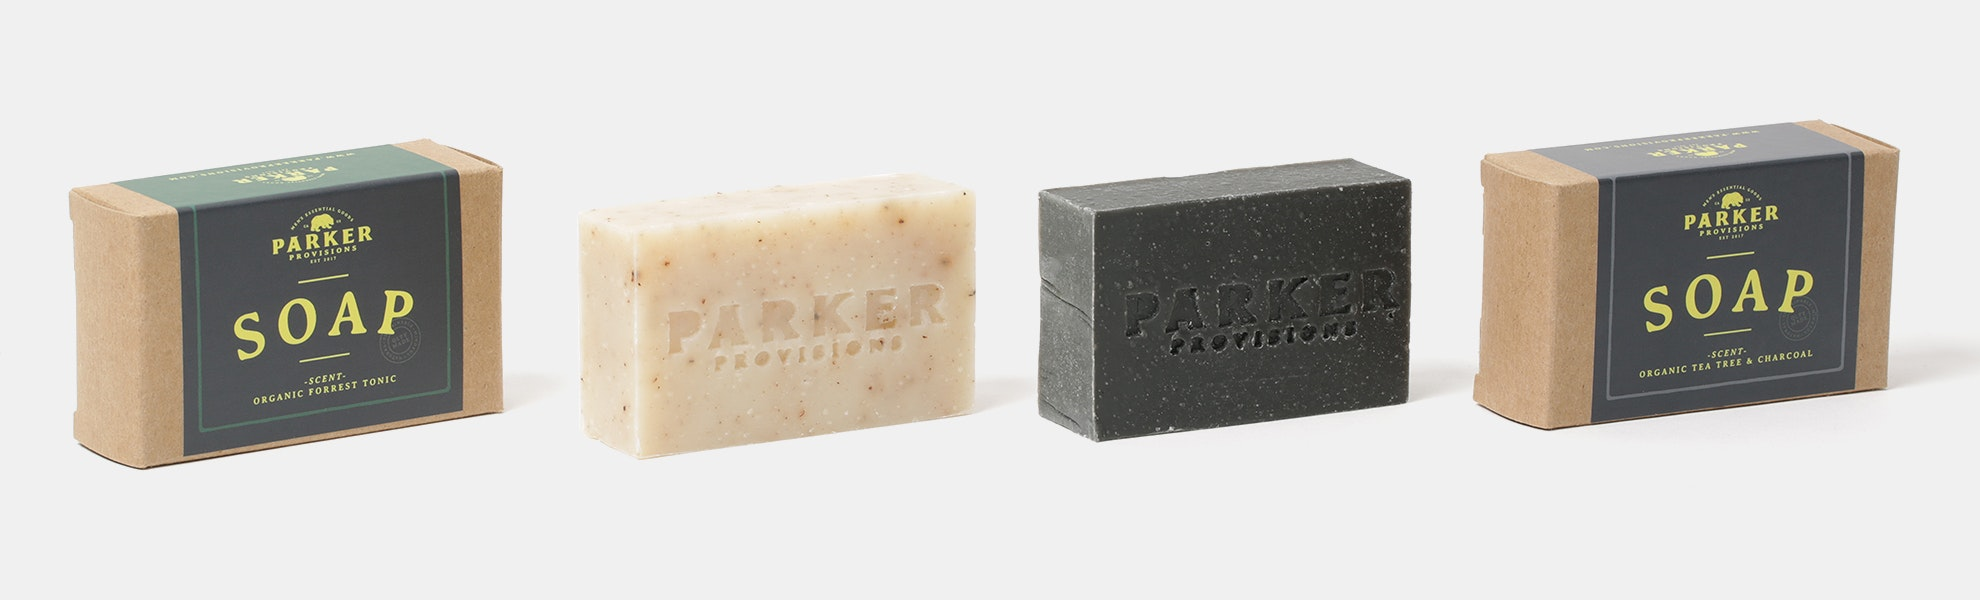 Parker Provisions Bar Soap (2-Pack)